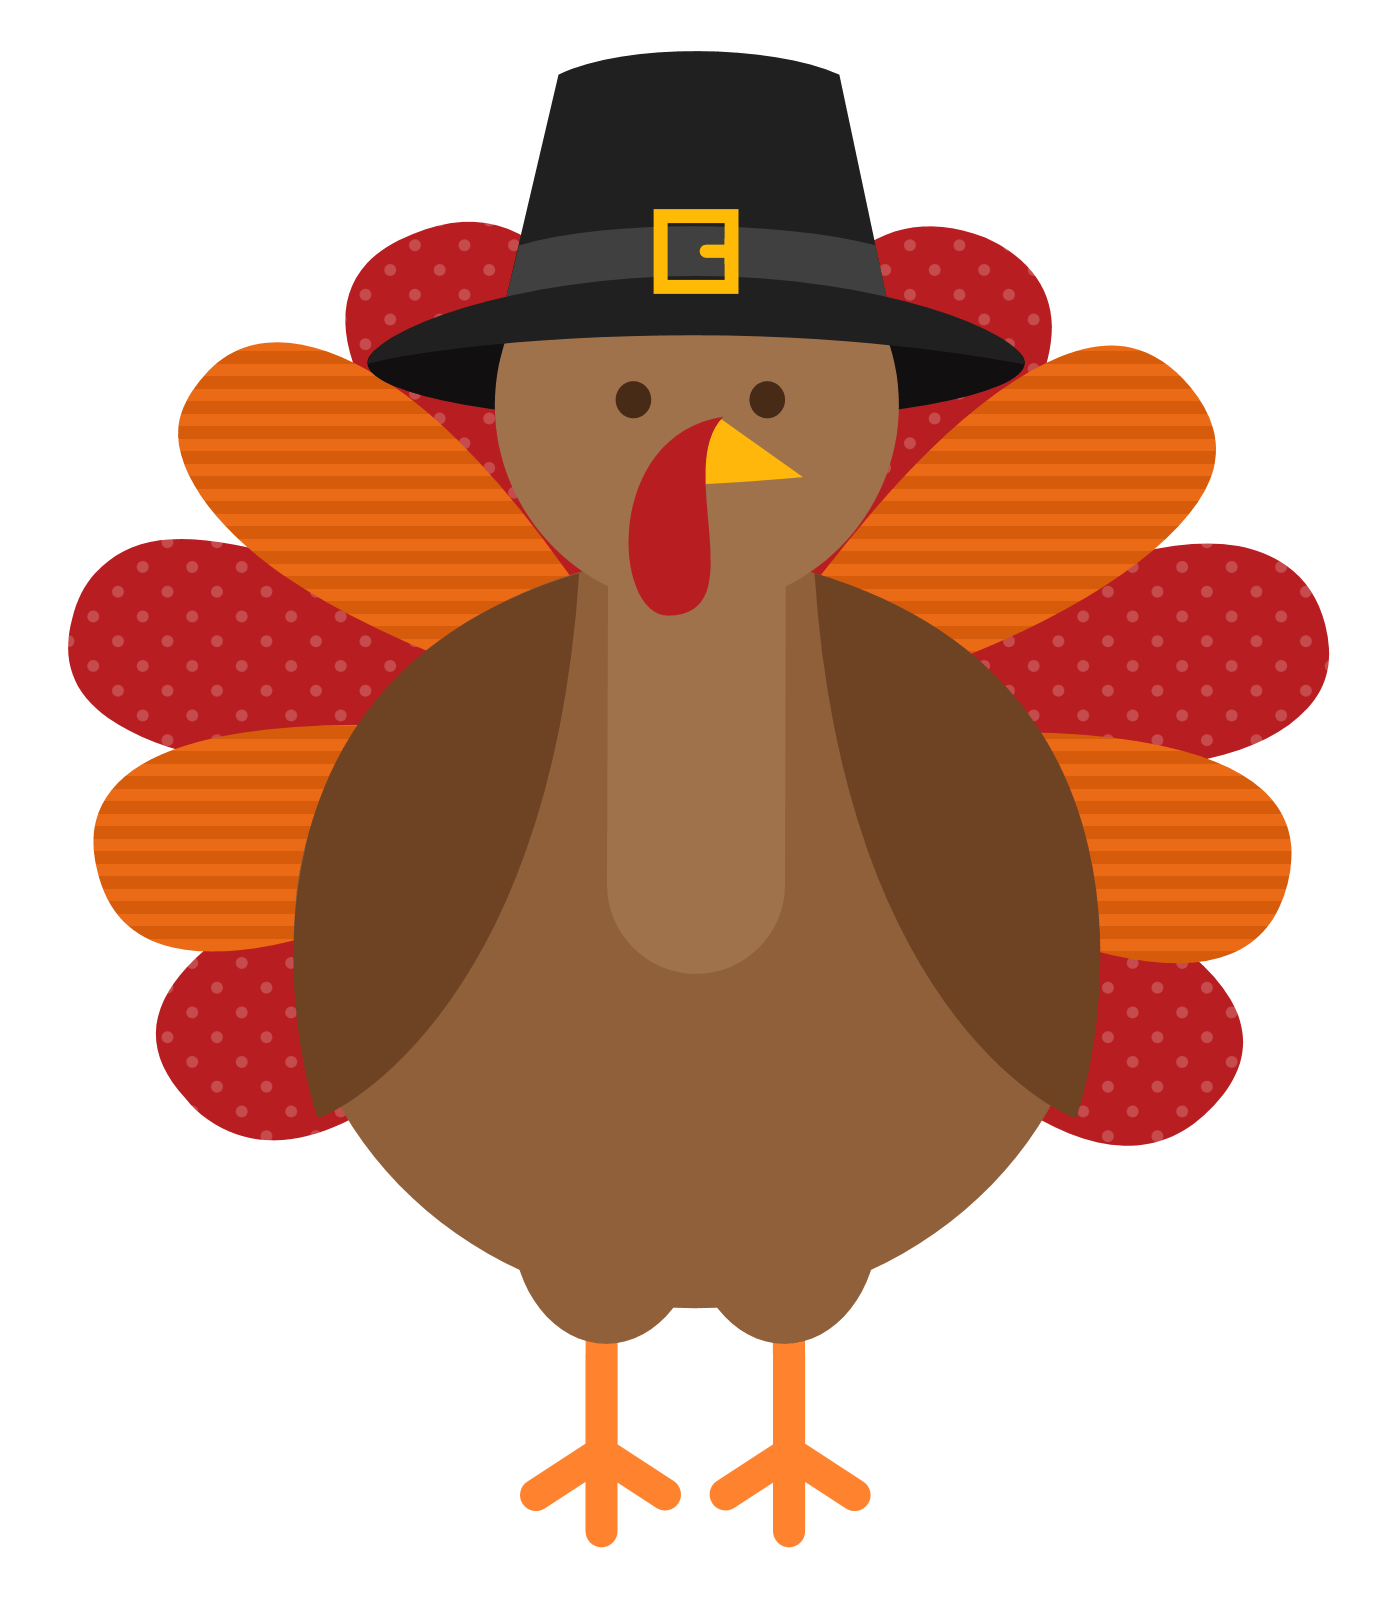 Clipart of all thanksgiving fixings freeuse Just in time for Thanksgiving   Scarbrough International freeuse